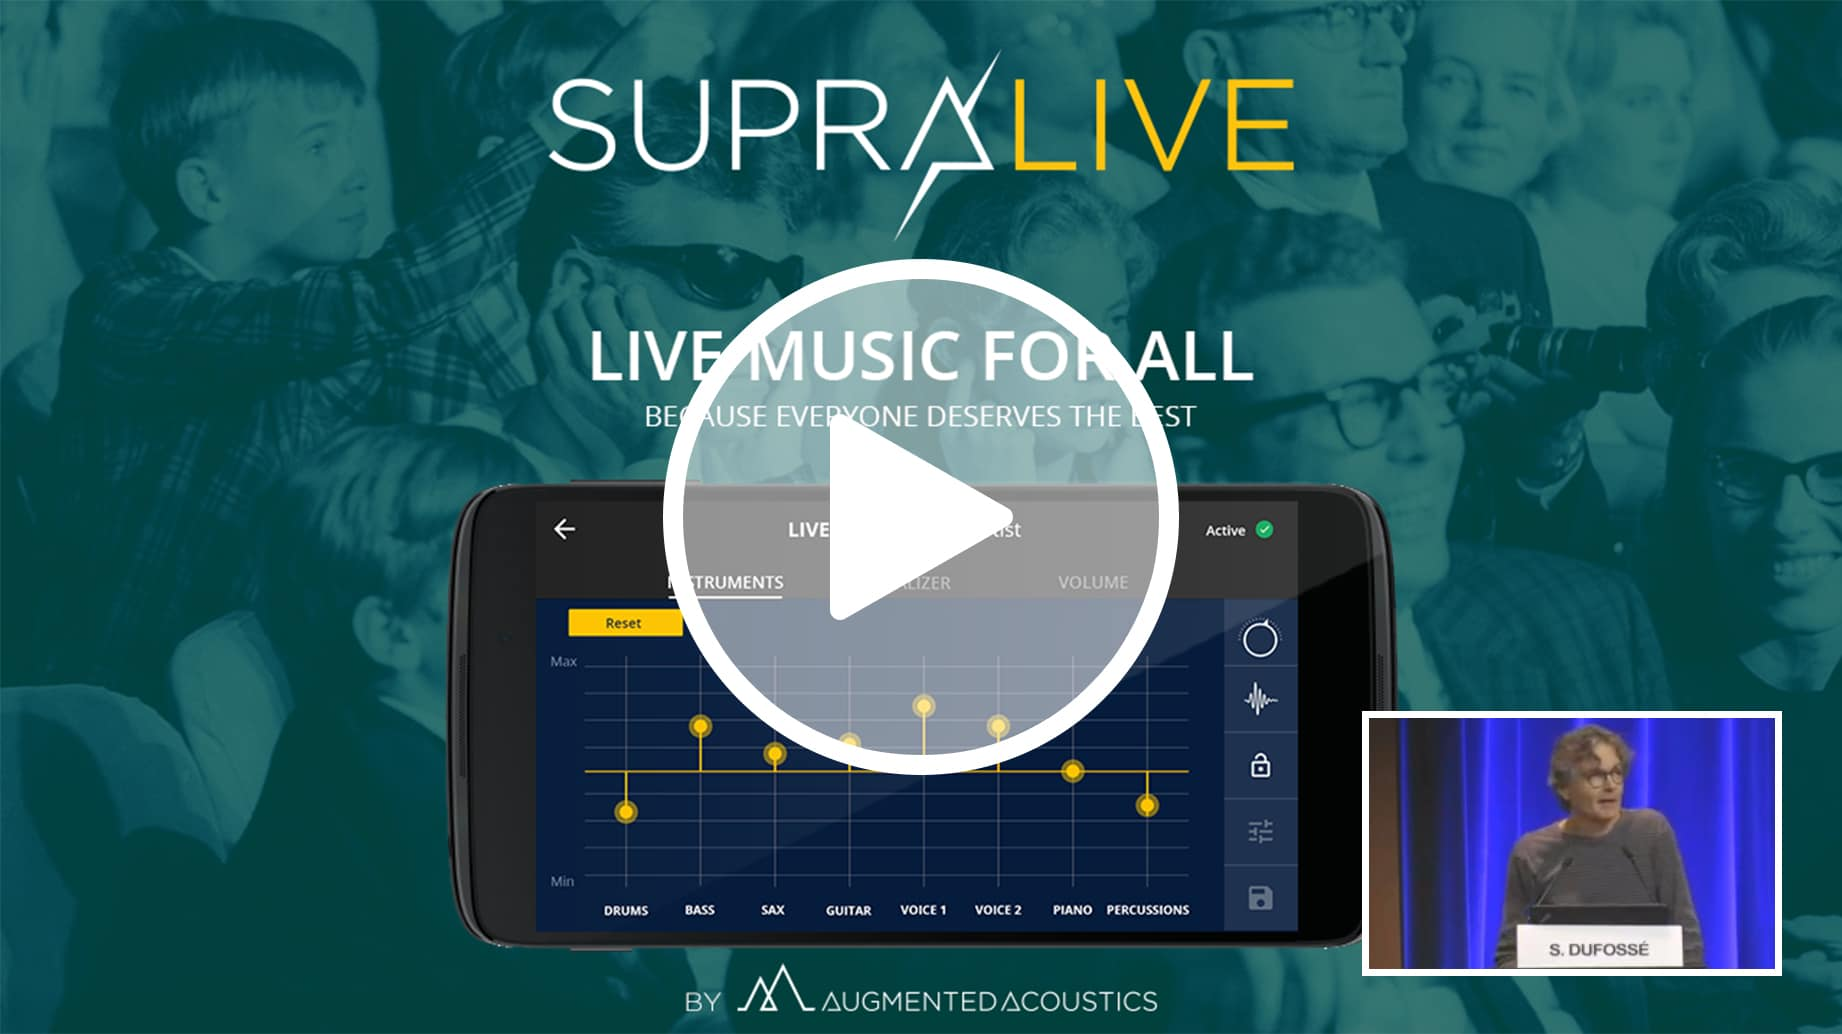 live music for all - Augmented acoustics